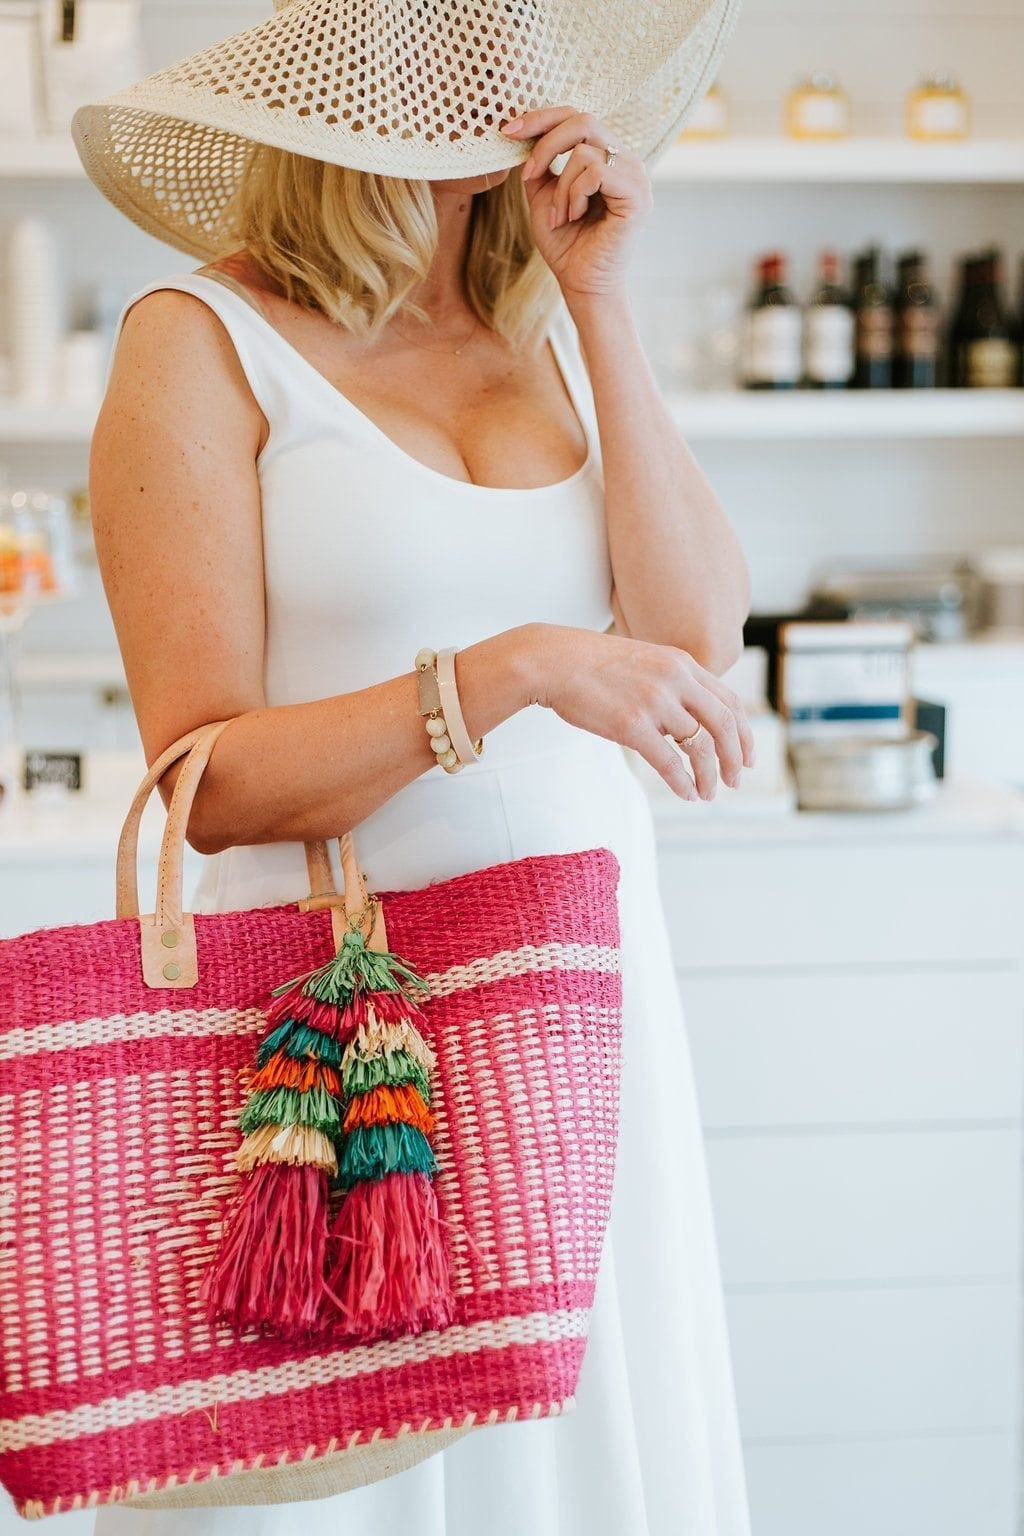 Little White dress for summer. Perfect beach dress with pink straw handbag with straw tassels. Add a pop of pink to an all white outfit!